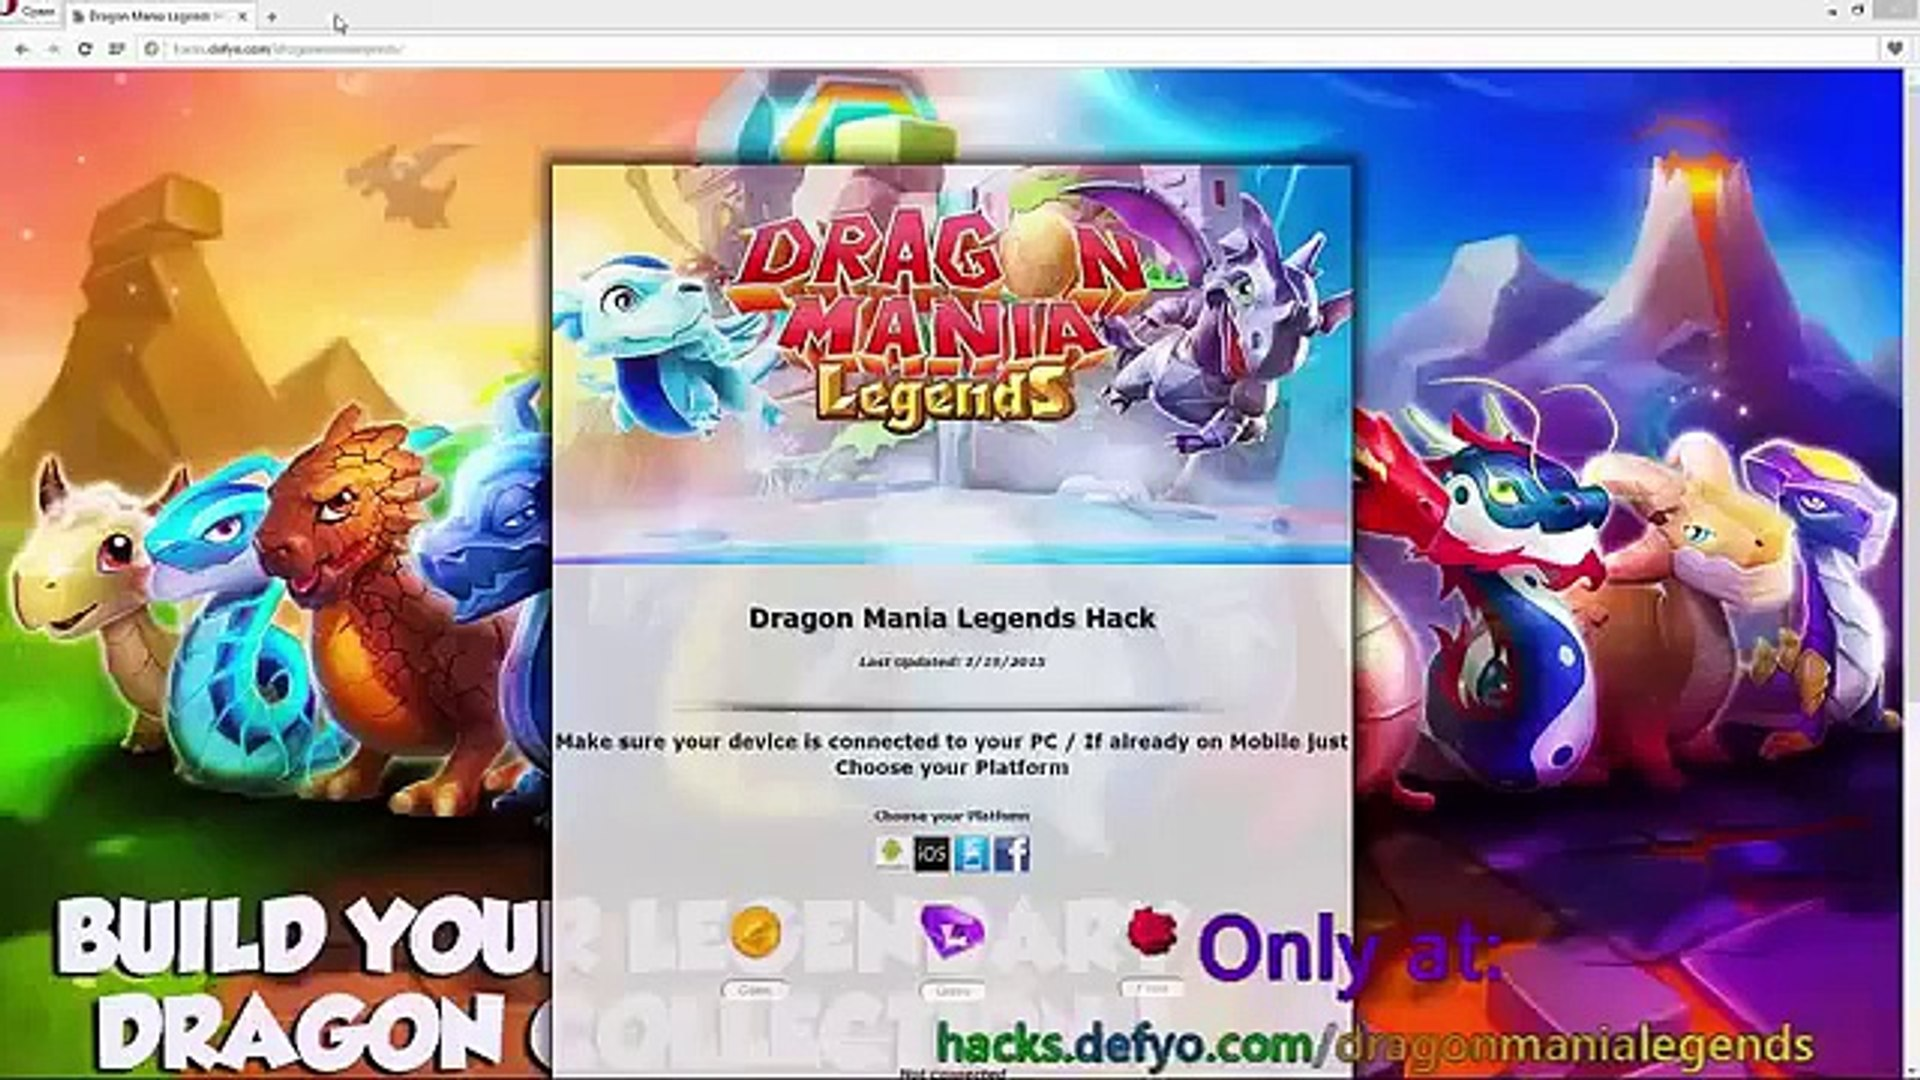 dragon mania legends Hack - Easy to follow instructions